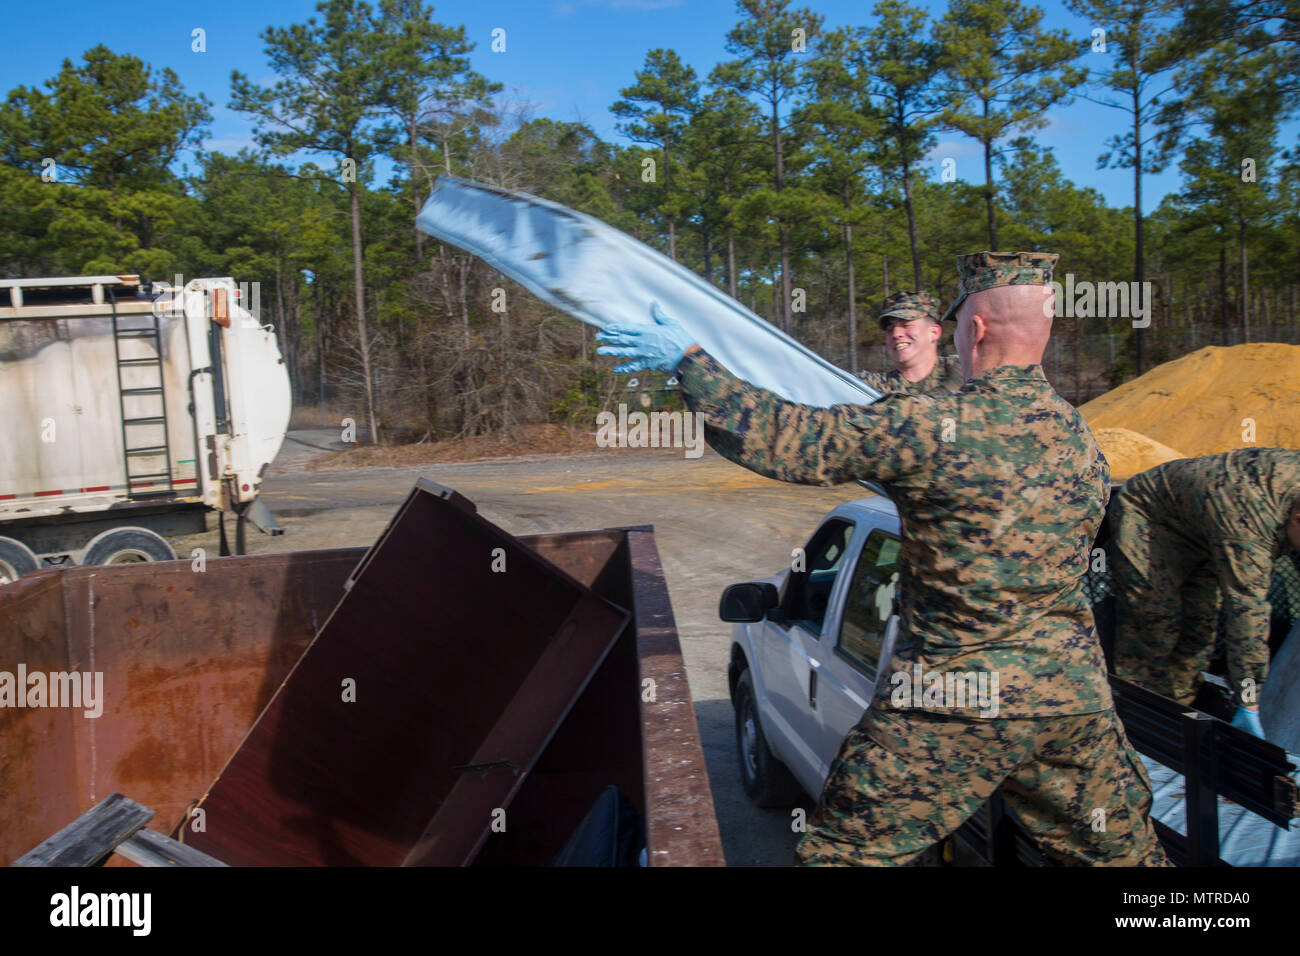 U.S. Marines with Headquarters and Support Battalion, Marine Corps Installation East, dispose of trash, Camp Lejeune, N.C., Jan. 12, 2017. The clean sweep was conducted to ensure a good state of cleanliness is being maintained within the units' respected facilities. (U.S. Marine Corps photo by Lance Cpl. Austin Livingston) - Stock Image